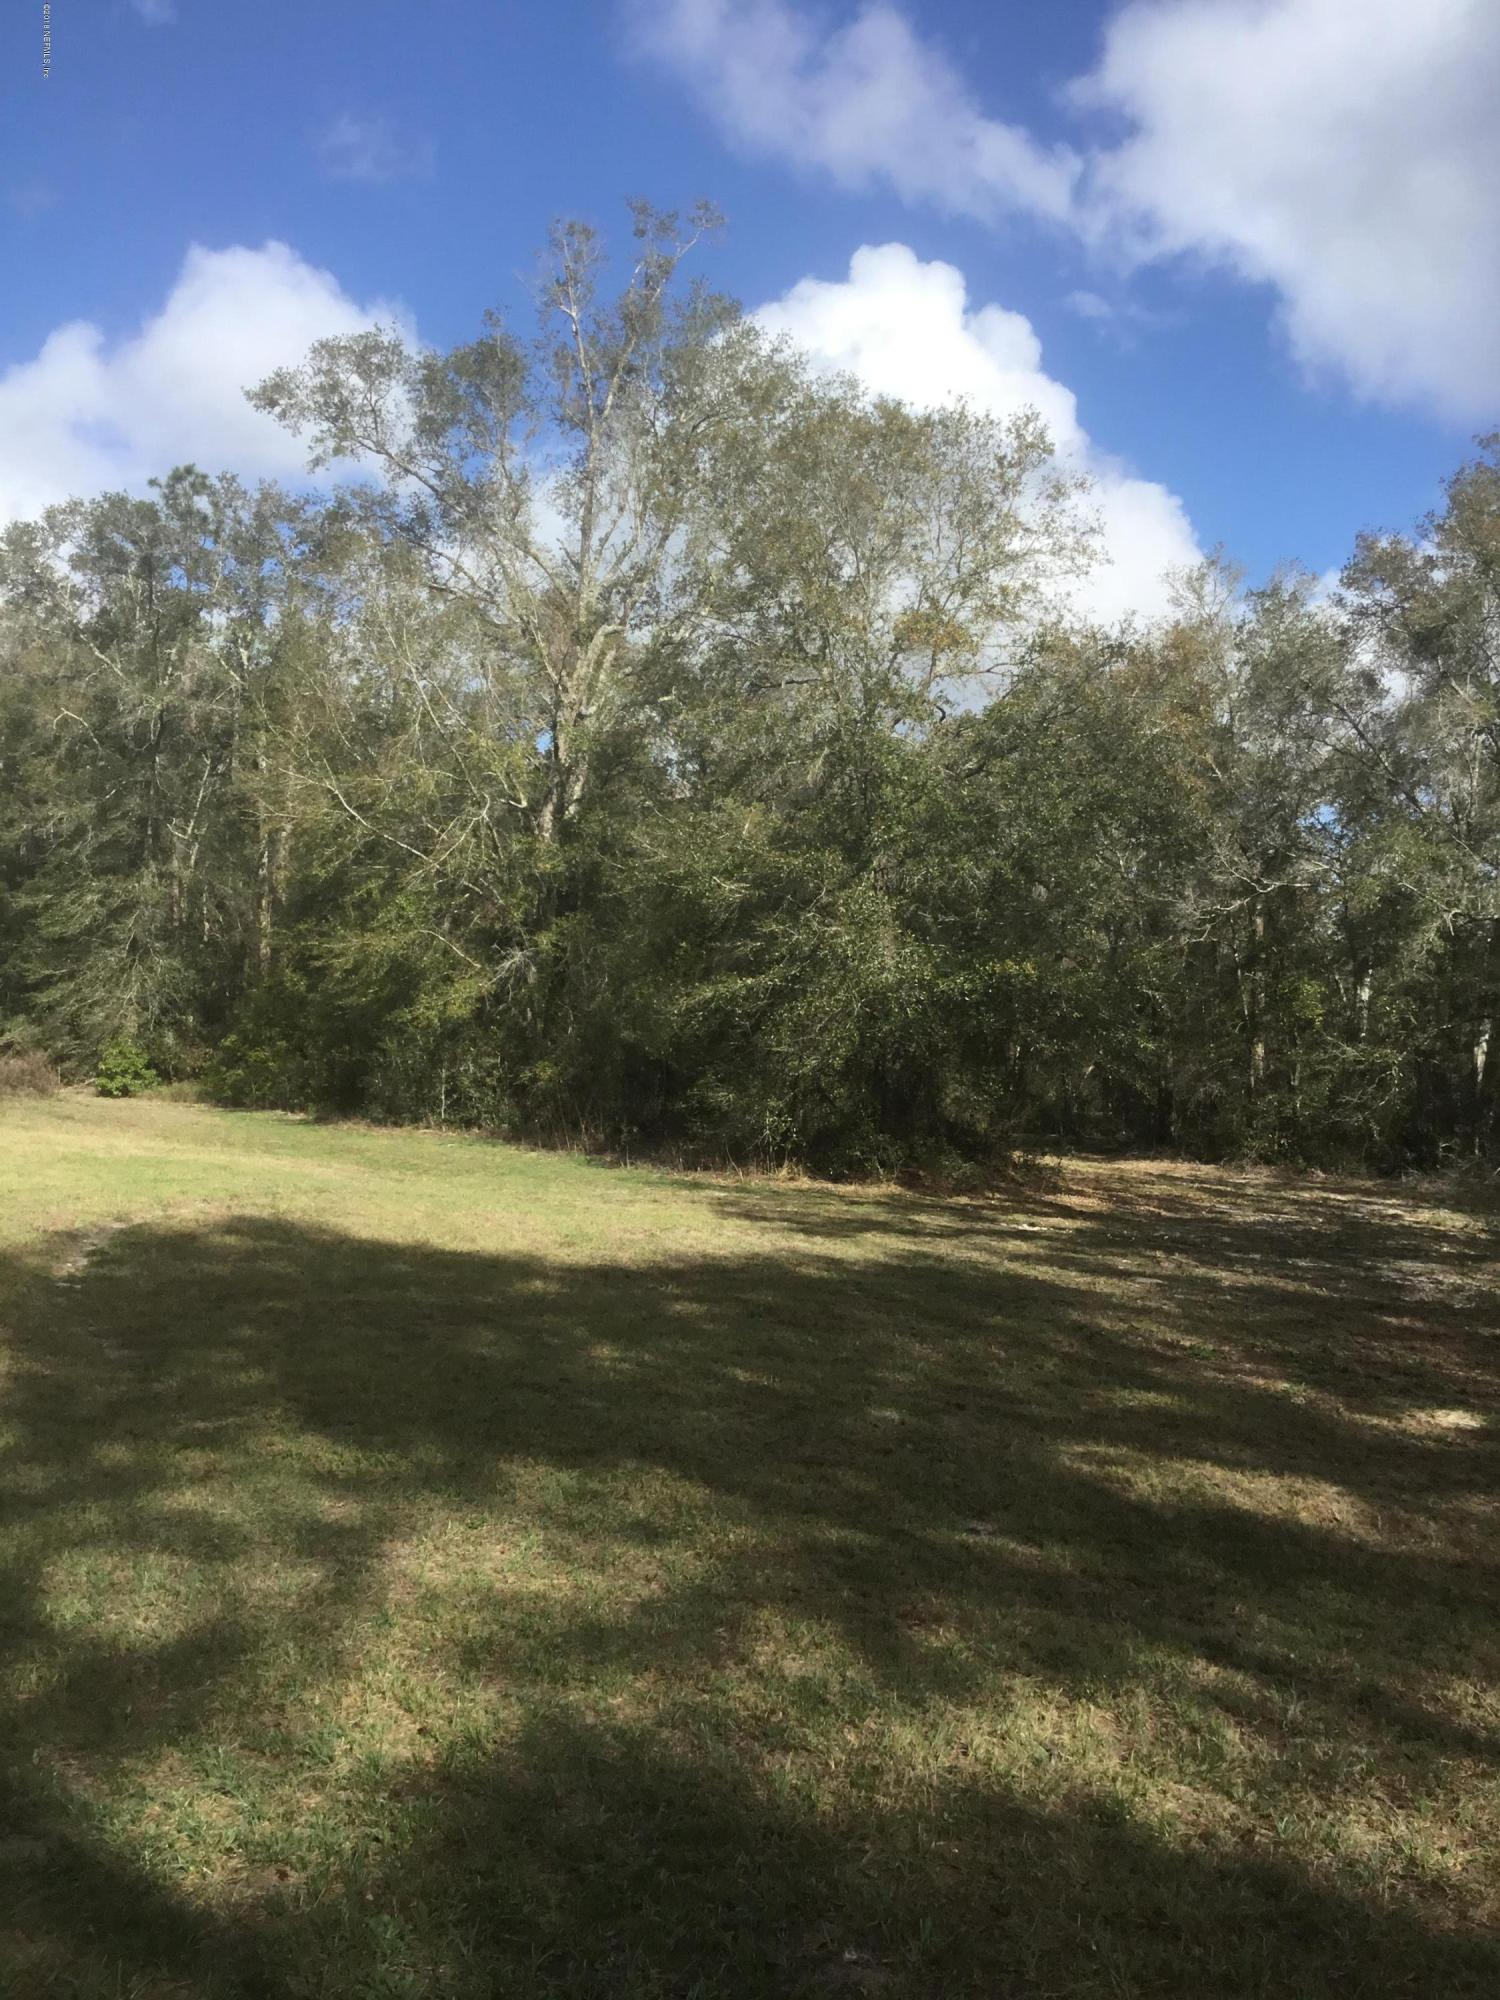 0 COOKS, GREEN COVE SPRINGS, FLORIDA 32043, ,Vacant land,For sale,COOKS,923052